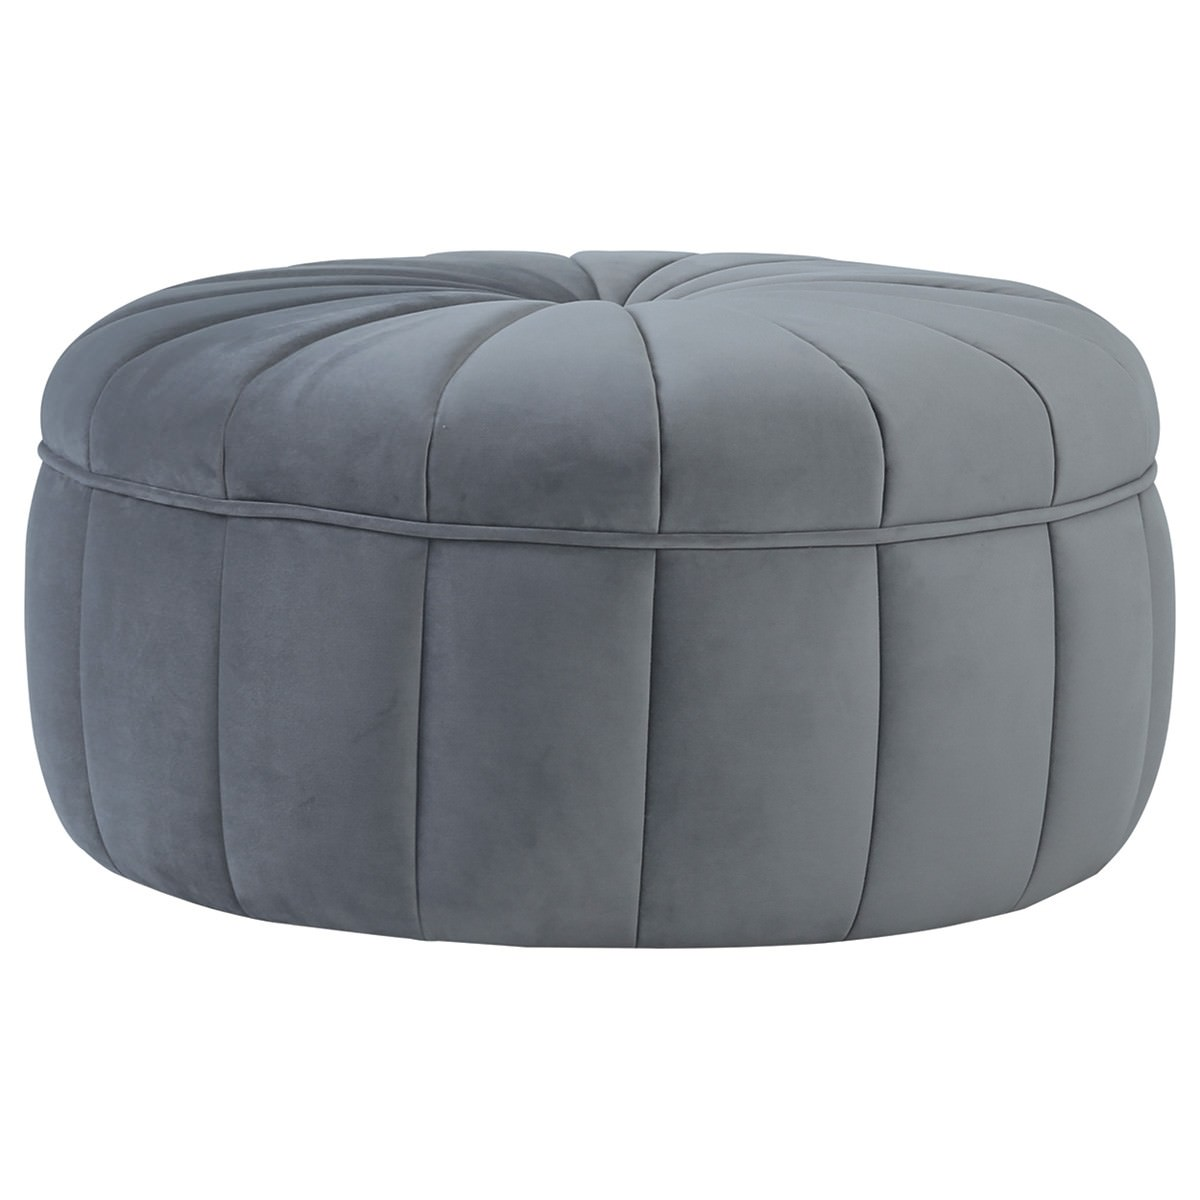 Probe Fabric Round Ottoman, Grey